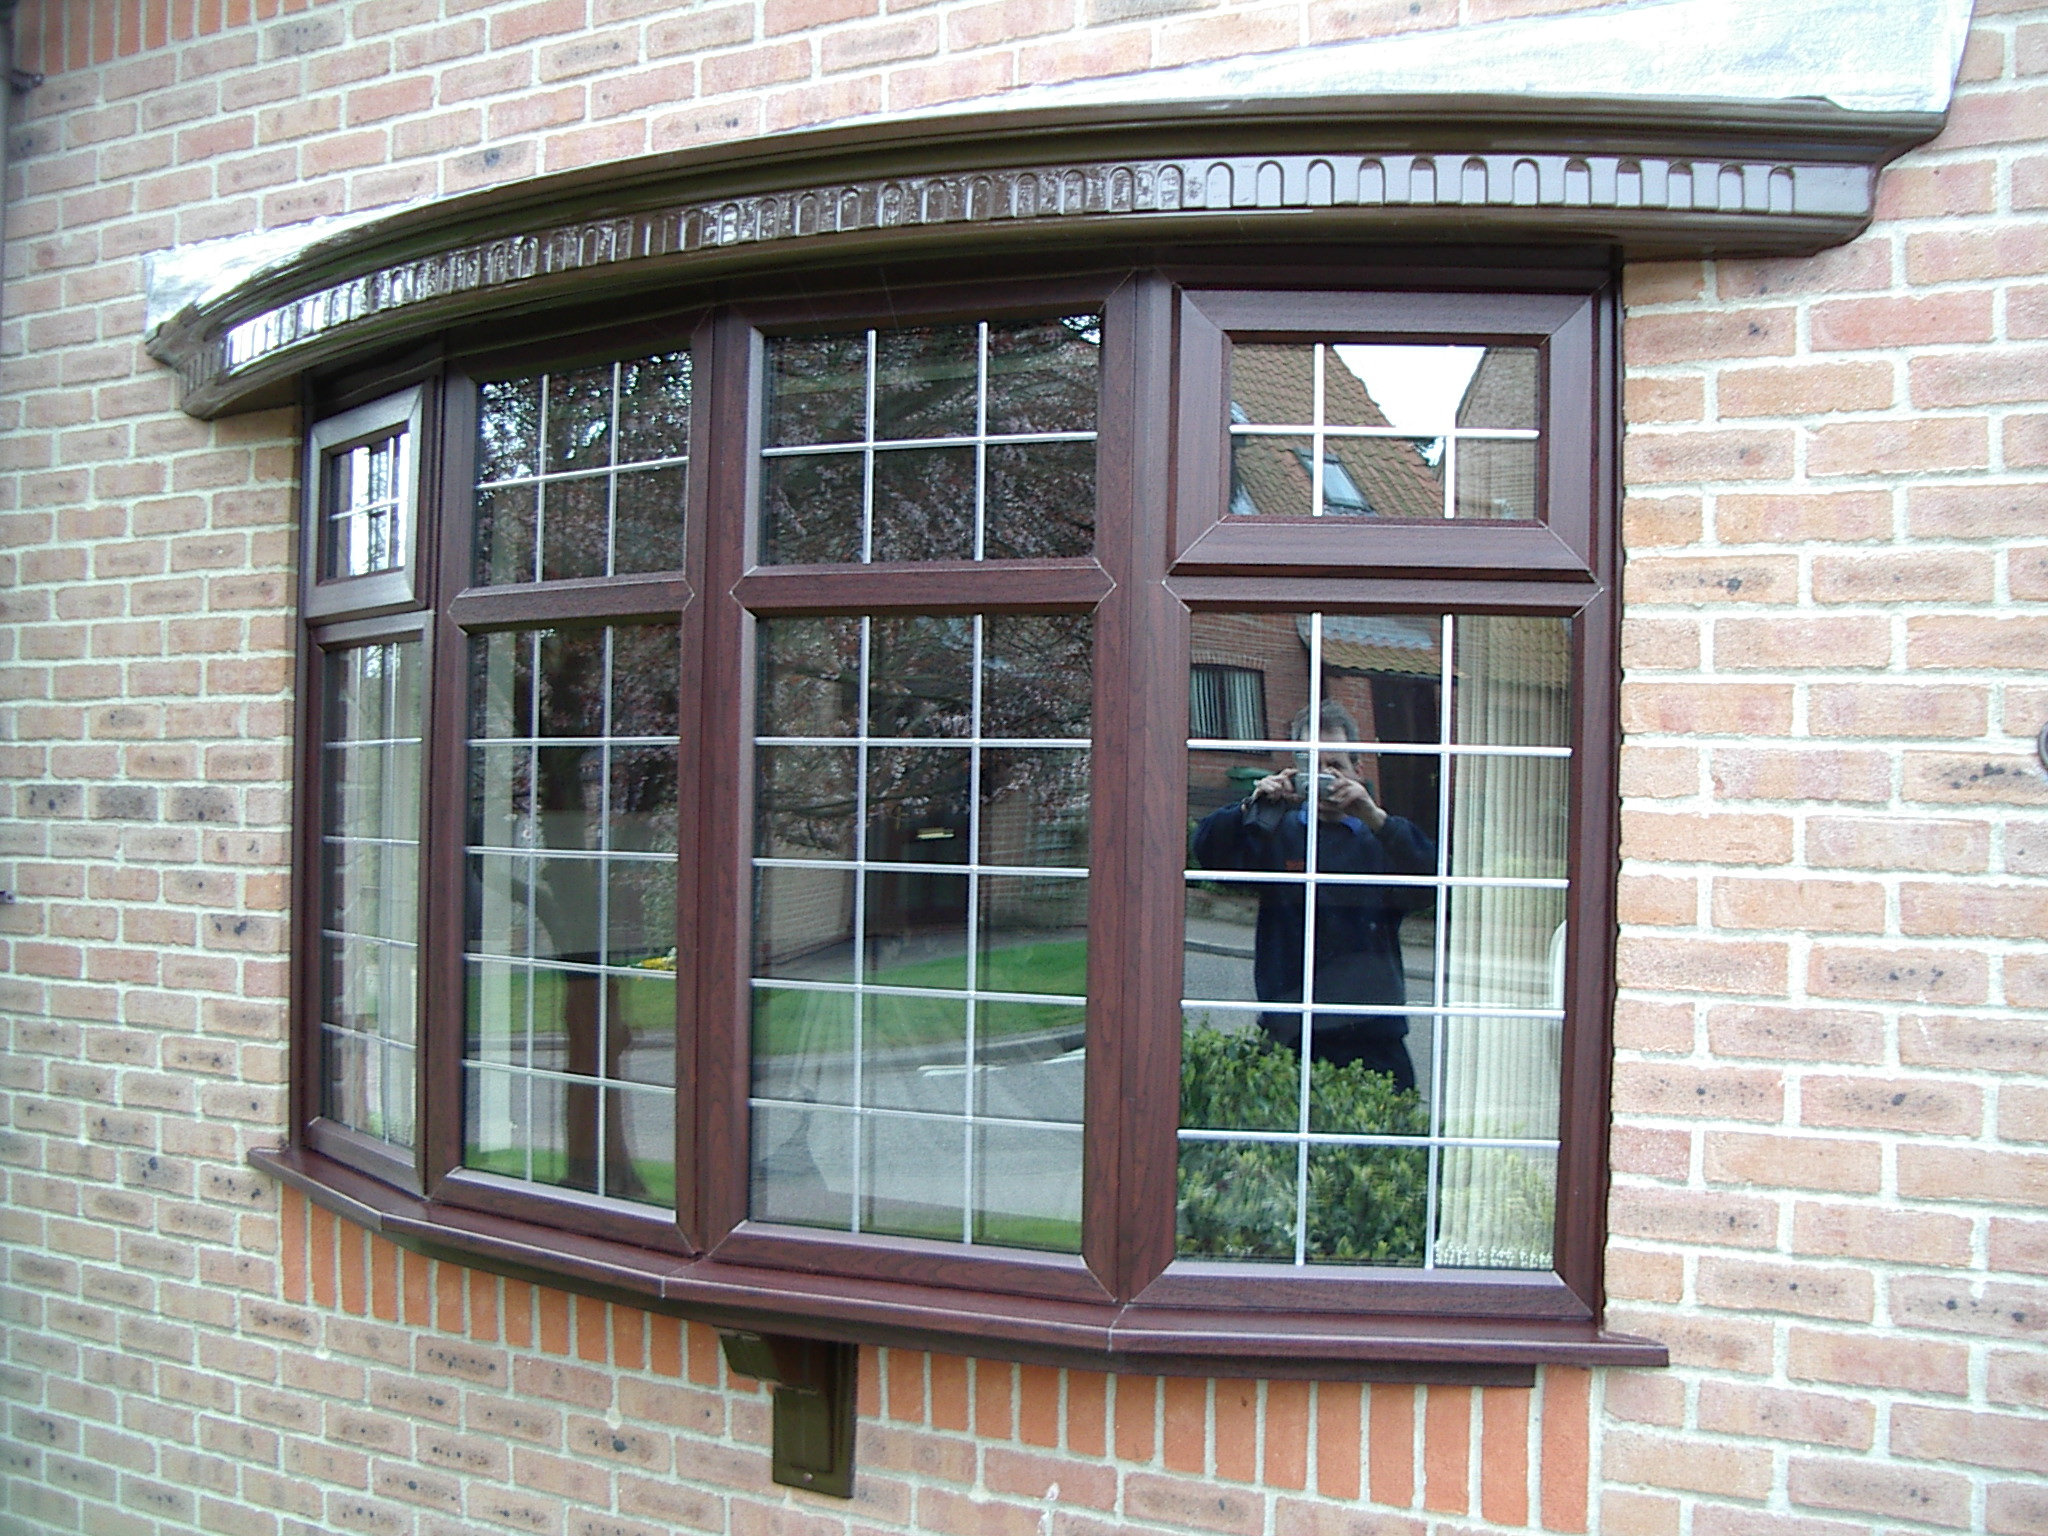 Window design home window designs home windows design for House window design